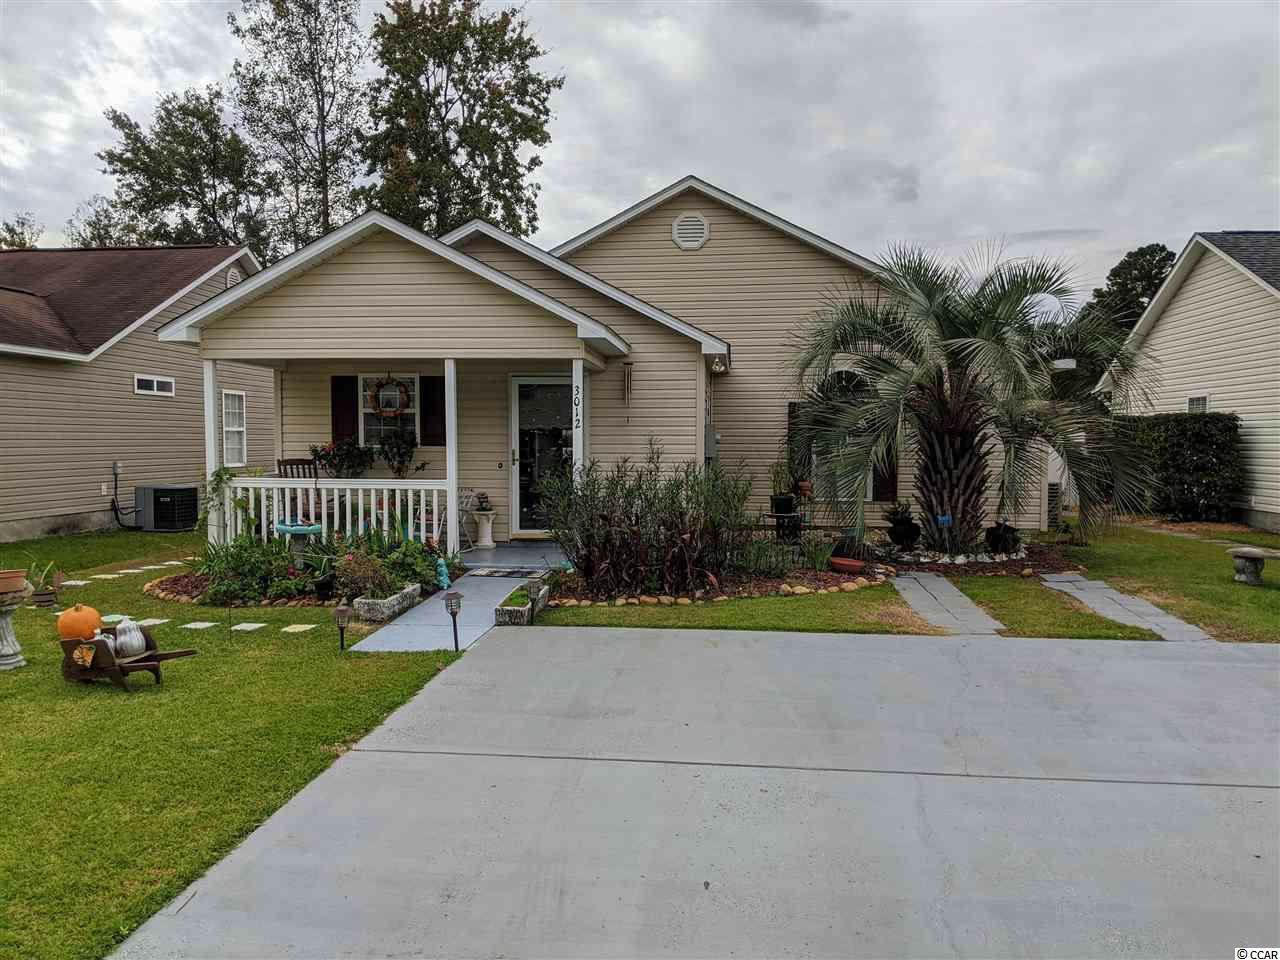 3012 Sabal Ct. - Photo 1